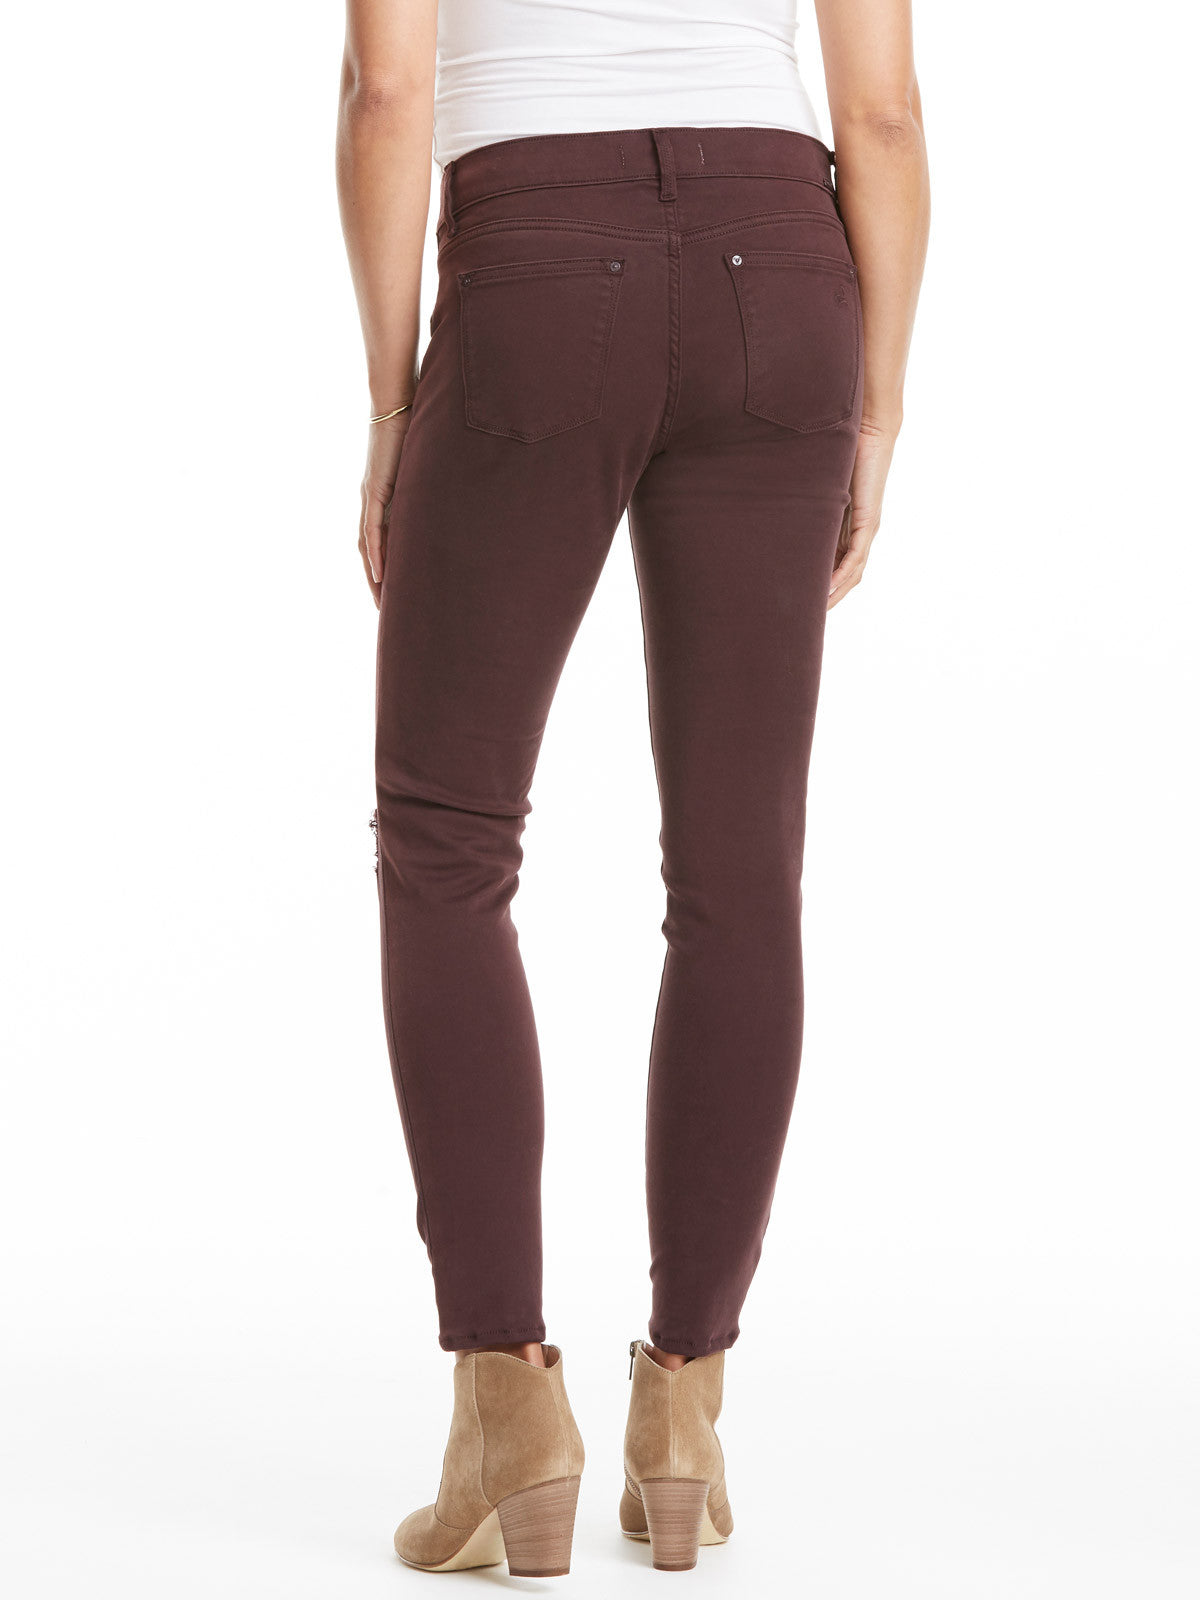 TILDEN | DL1961 Emma Maternity Jean - Reed